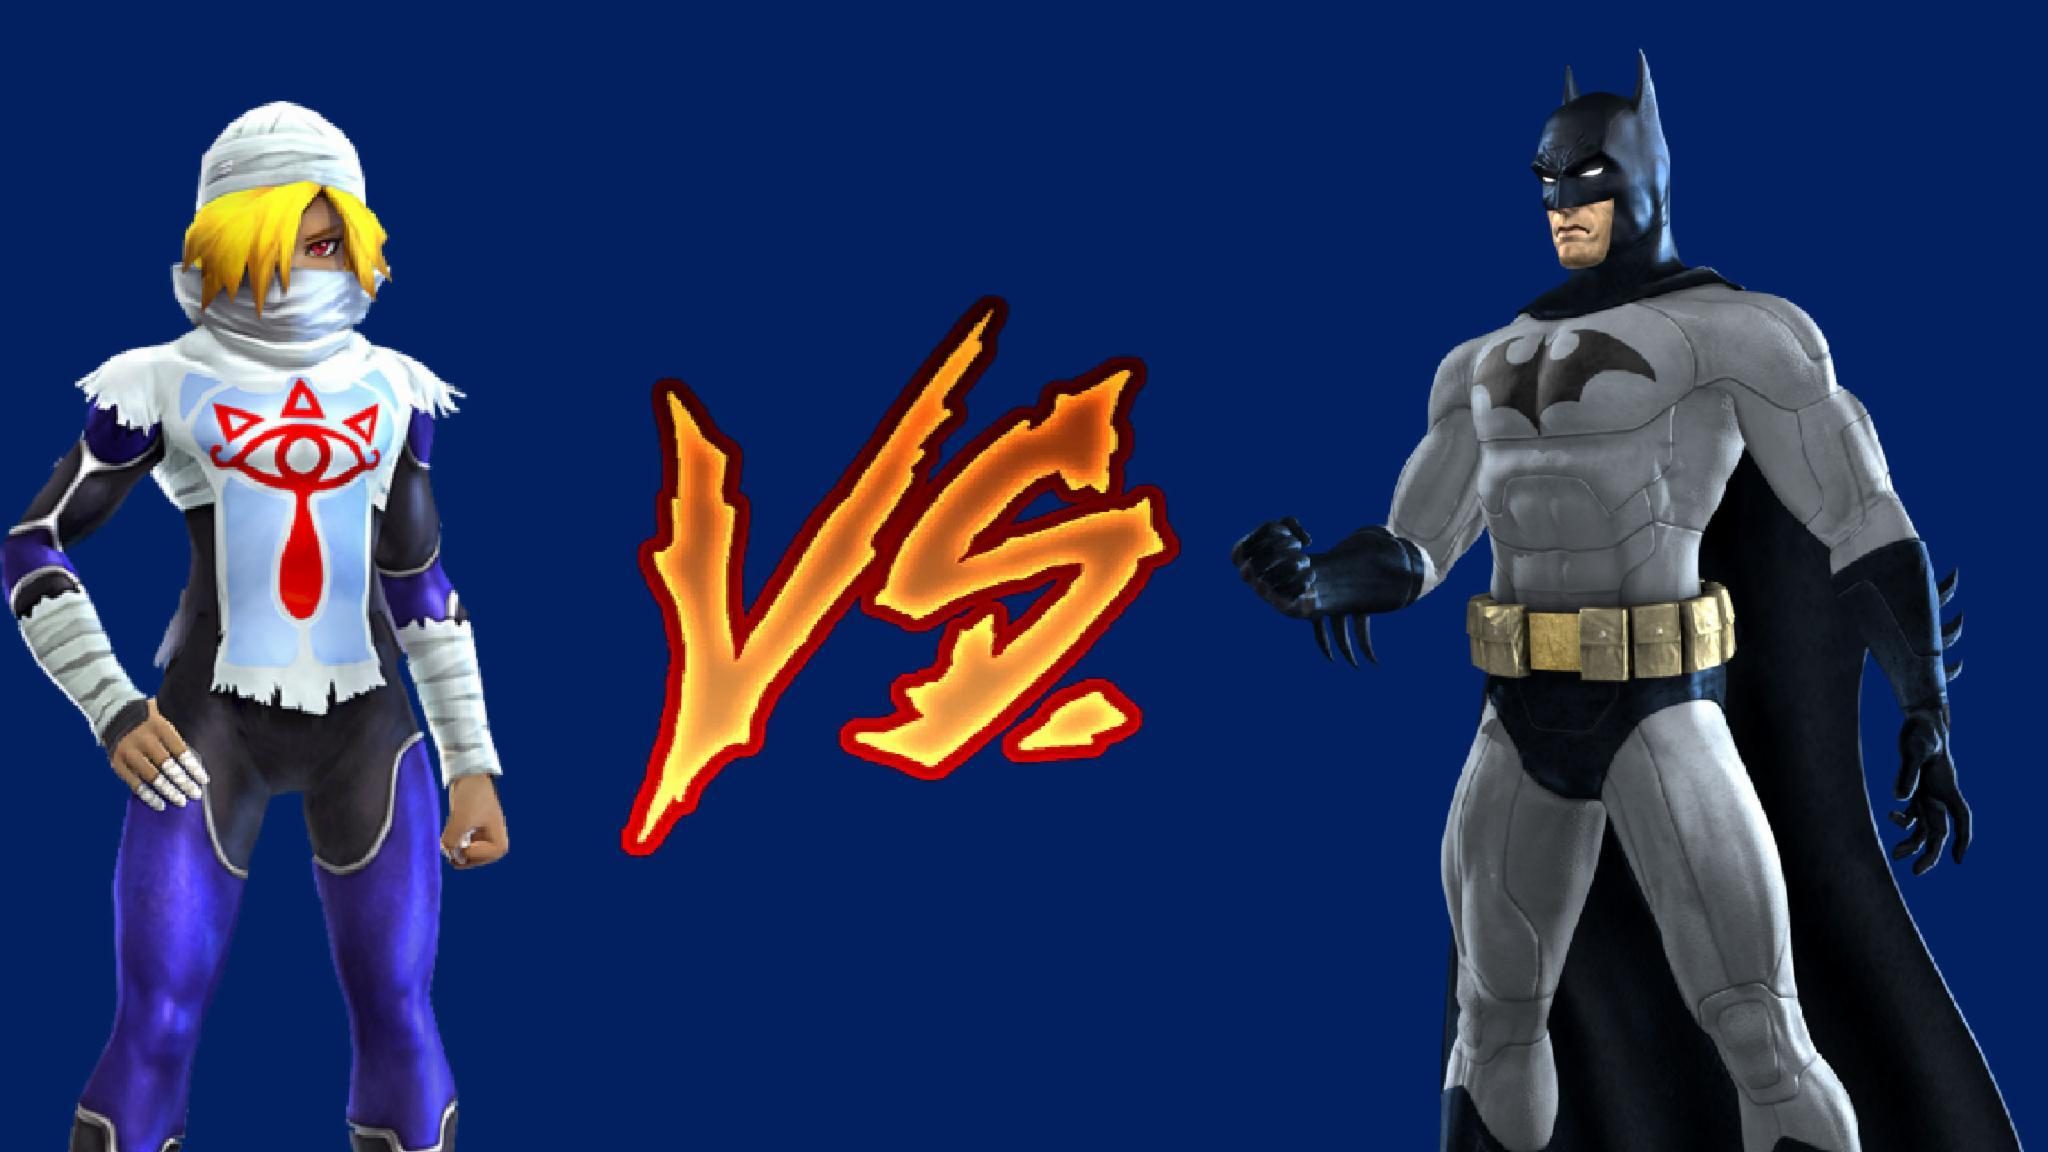 Sheik/Zelda VS Batman